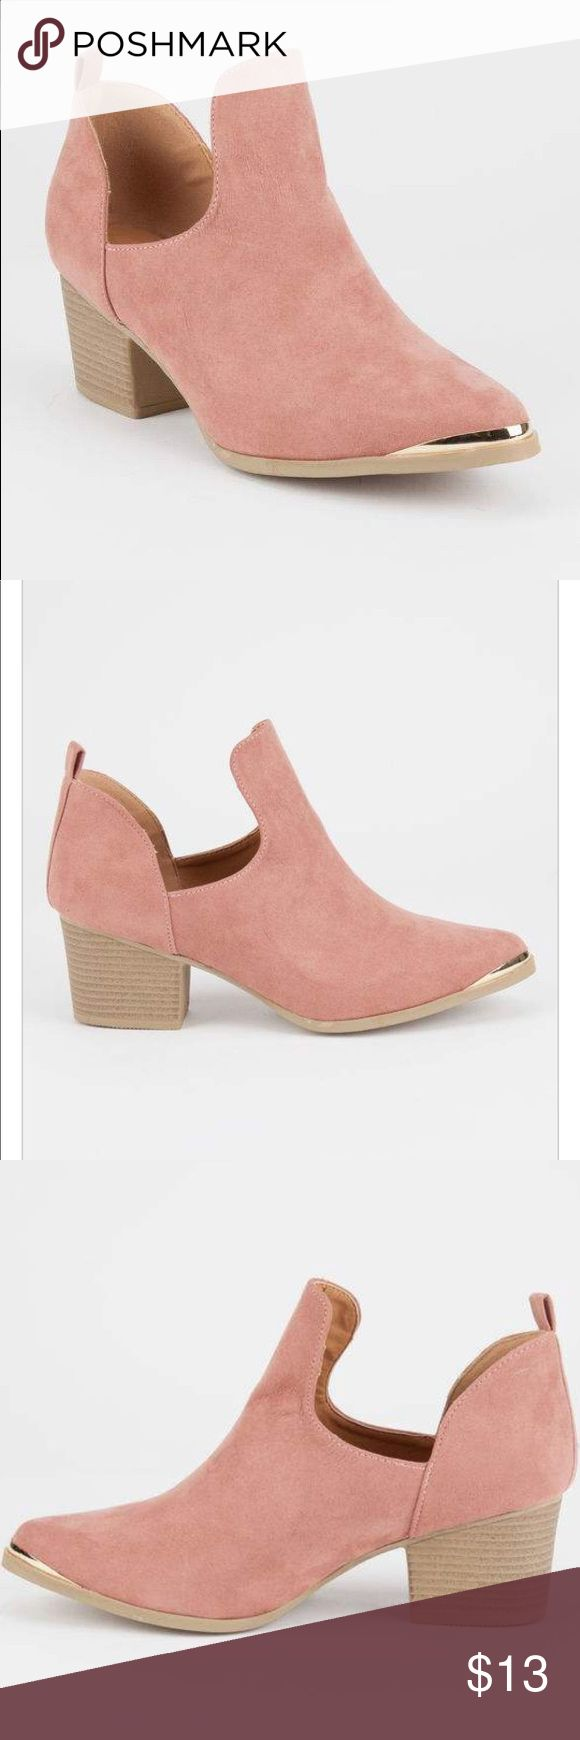 Pink Gold Toe Suede Cutout Booties Super cute pink suede booties. Looks great with jeans or a dress. Super comfortable and girly. In good condition! Tilly's Shoes Ankle Boots & Booties